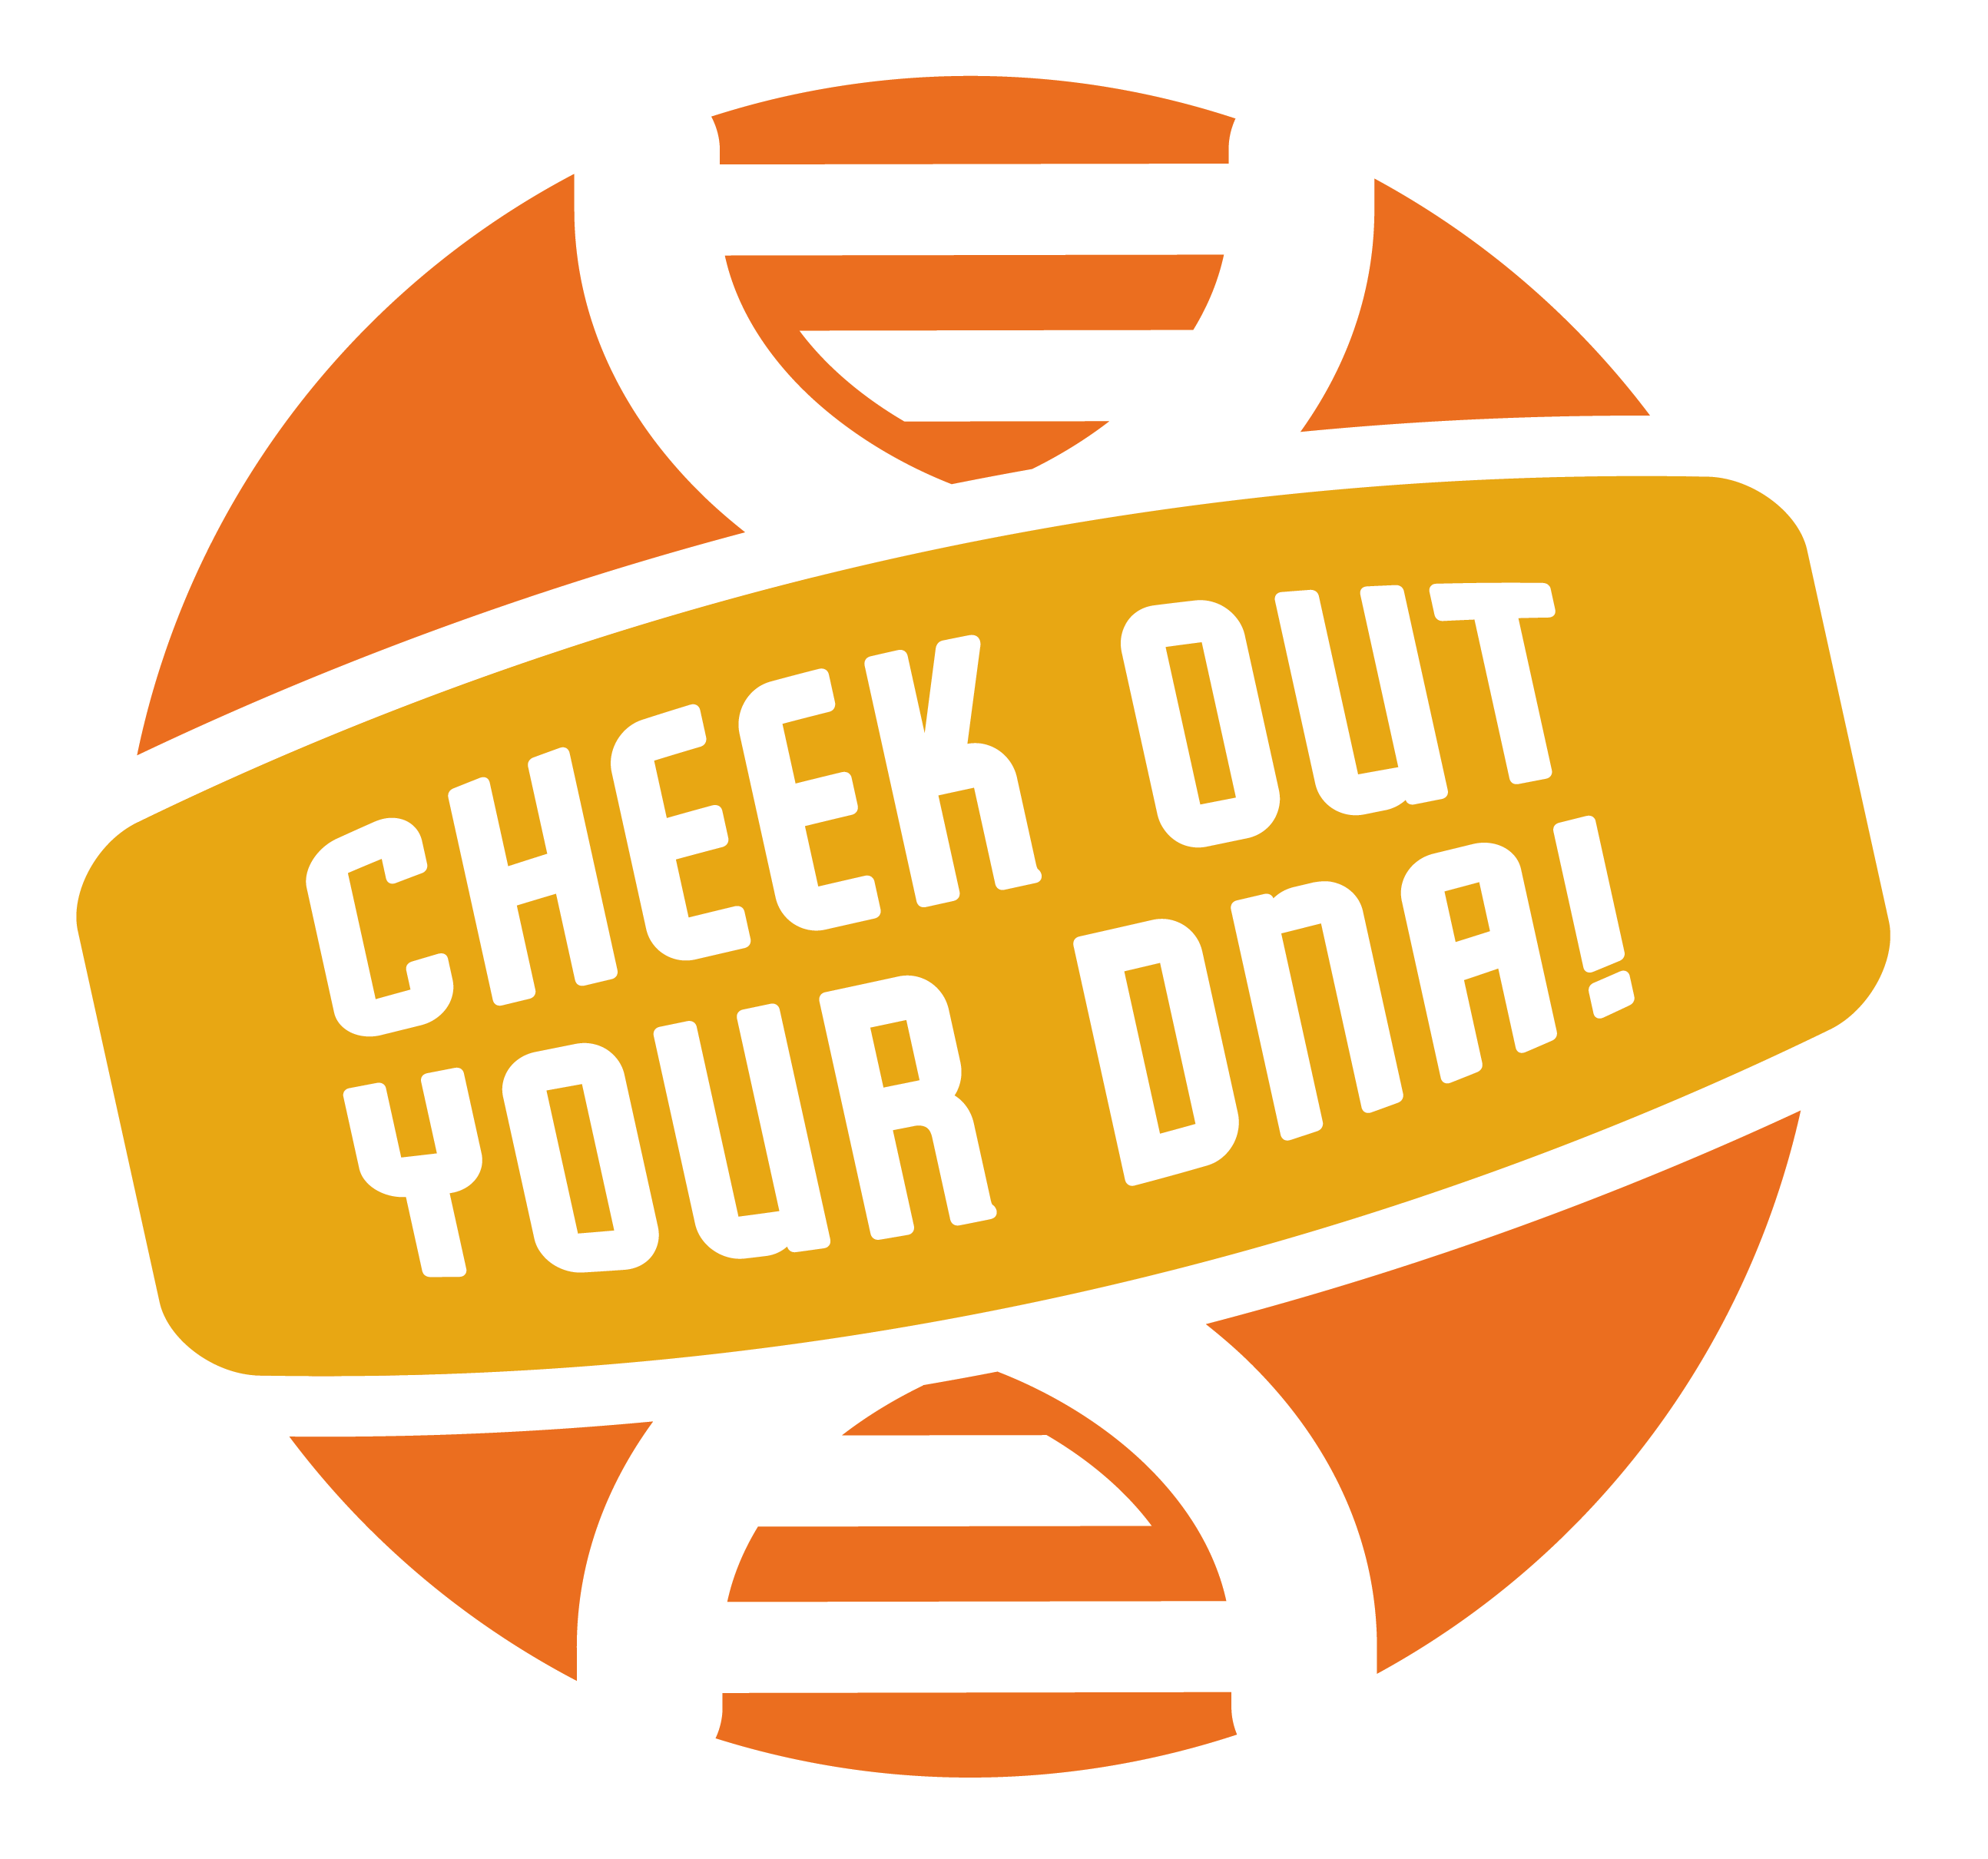 orange dna experiment logo